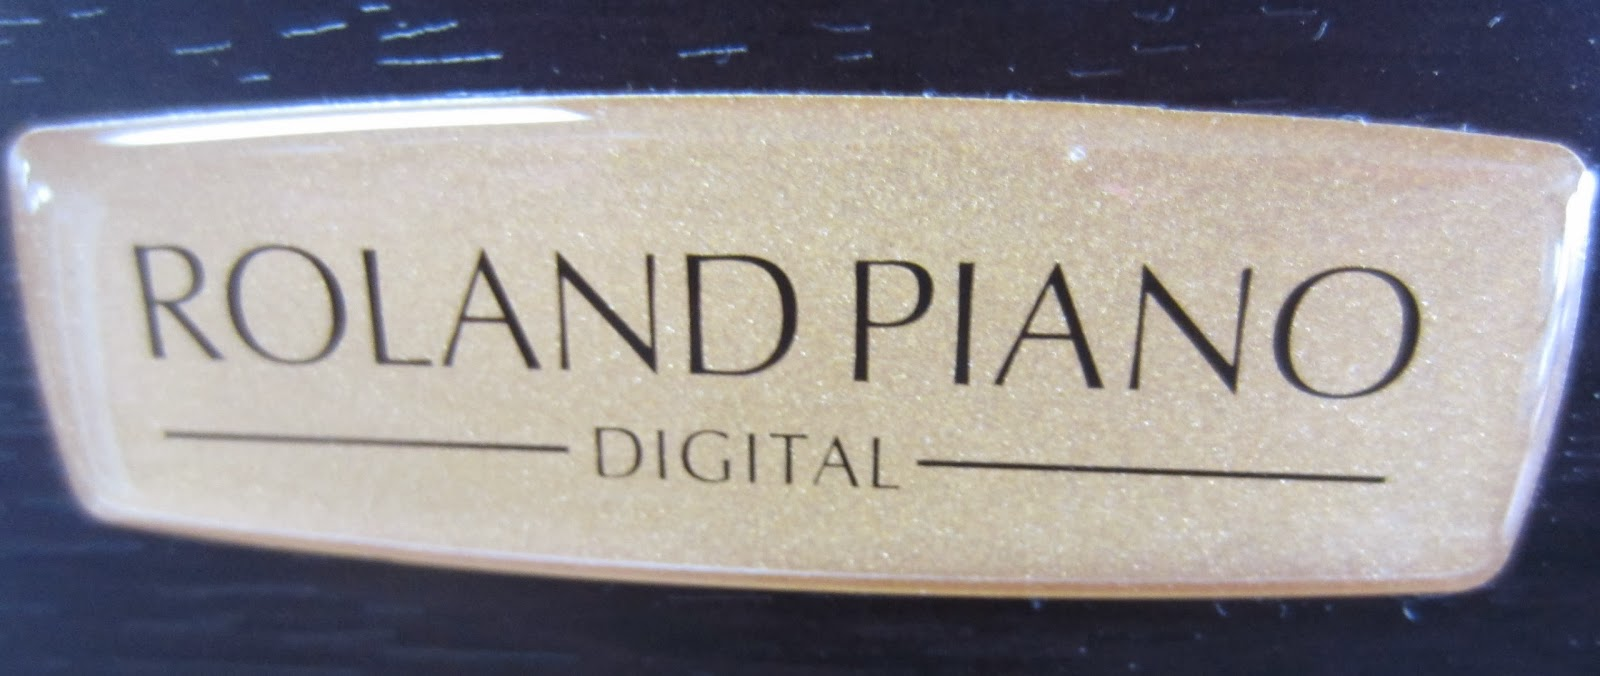 Roland HP508 digital piano logo